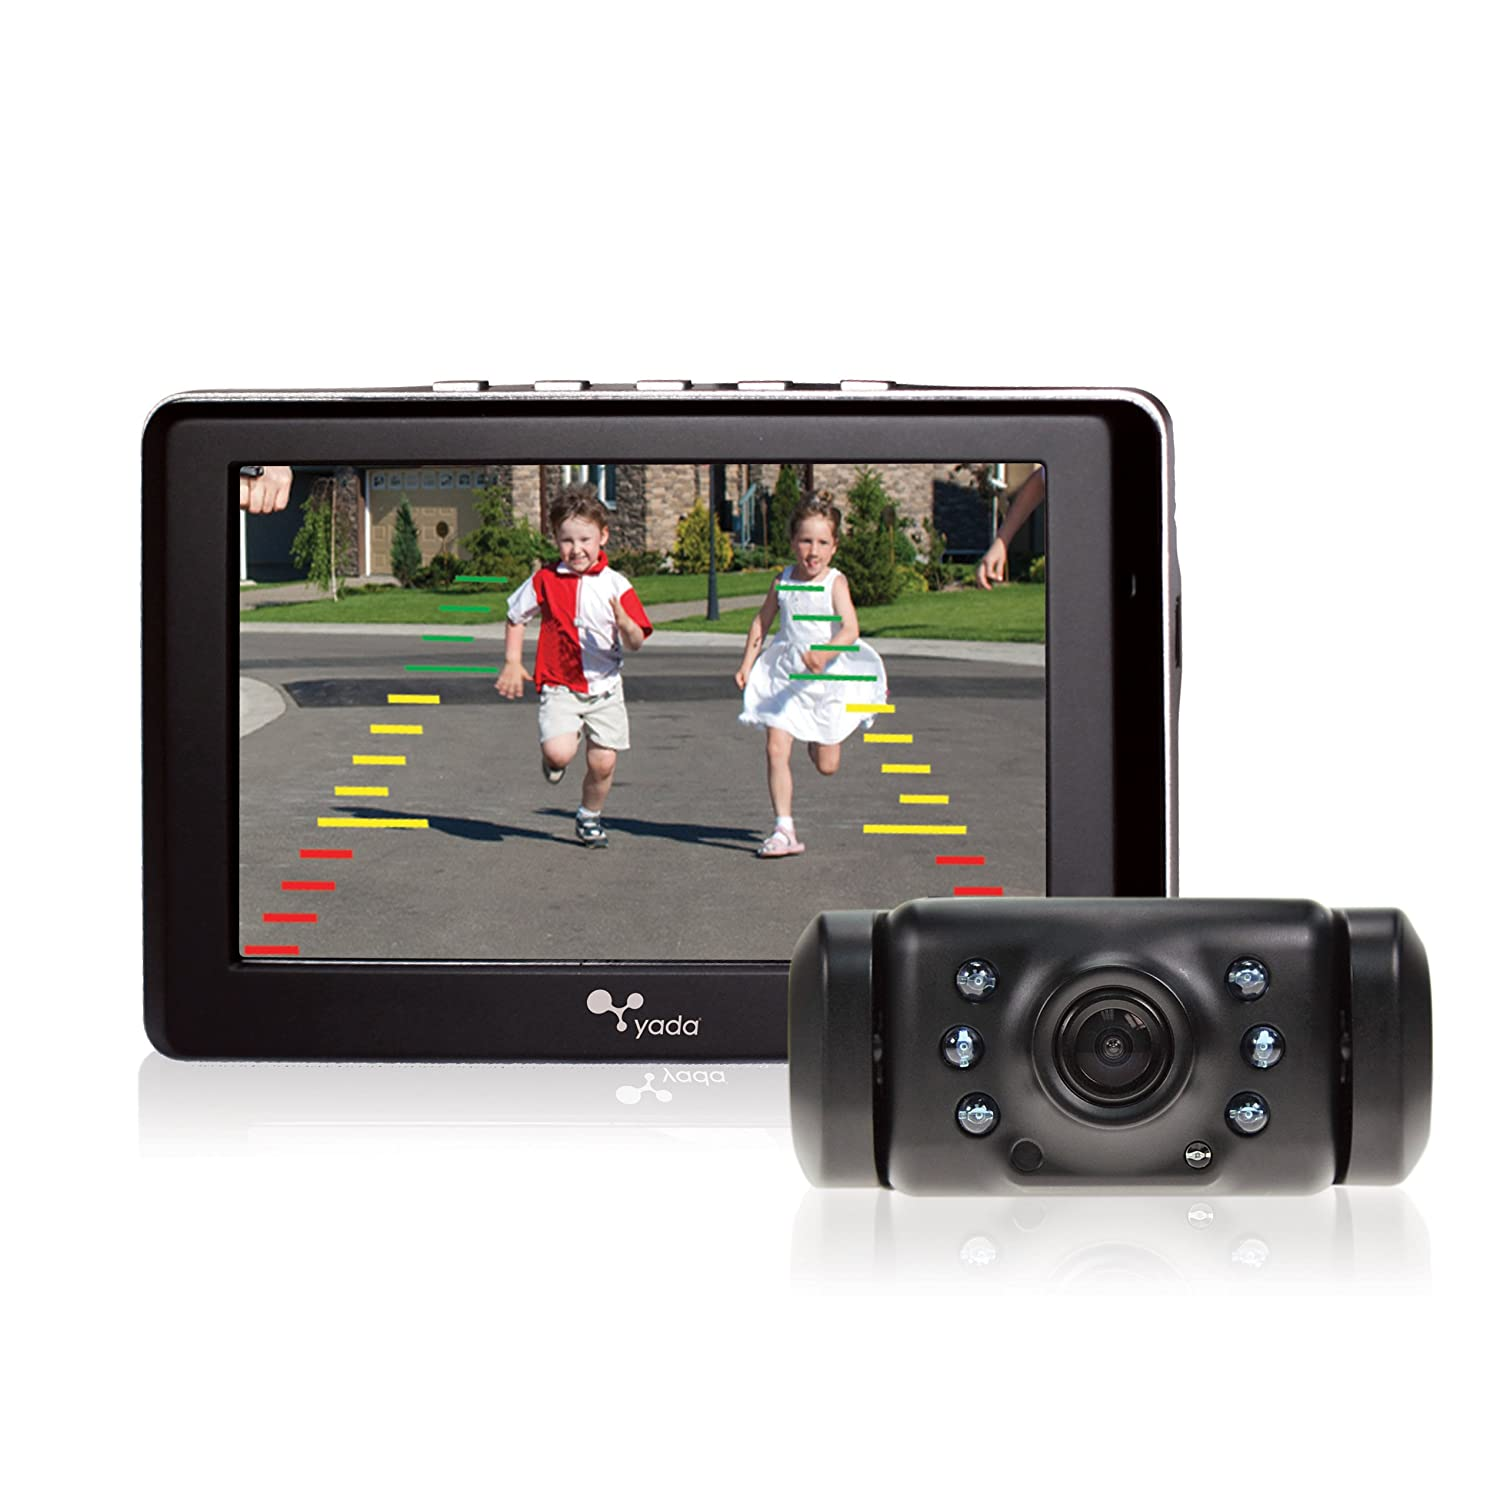 Top 5 Best Backup Camera Reviews 2016 2017